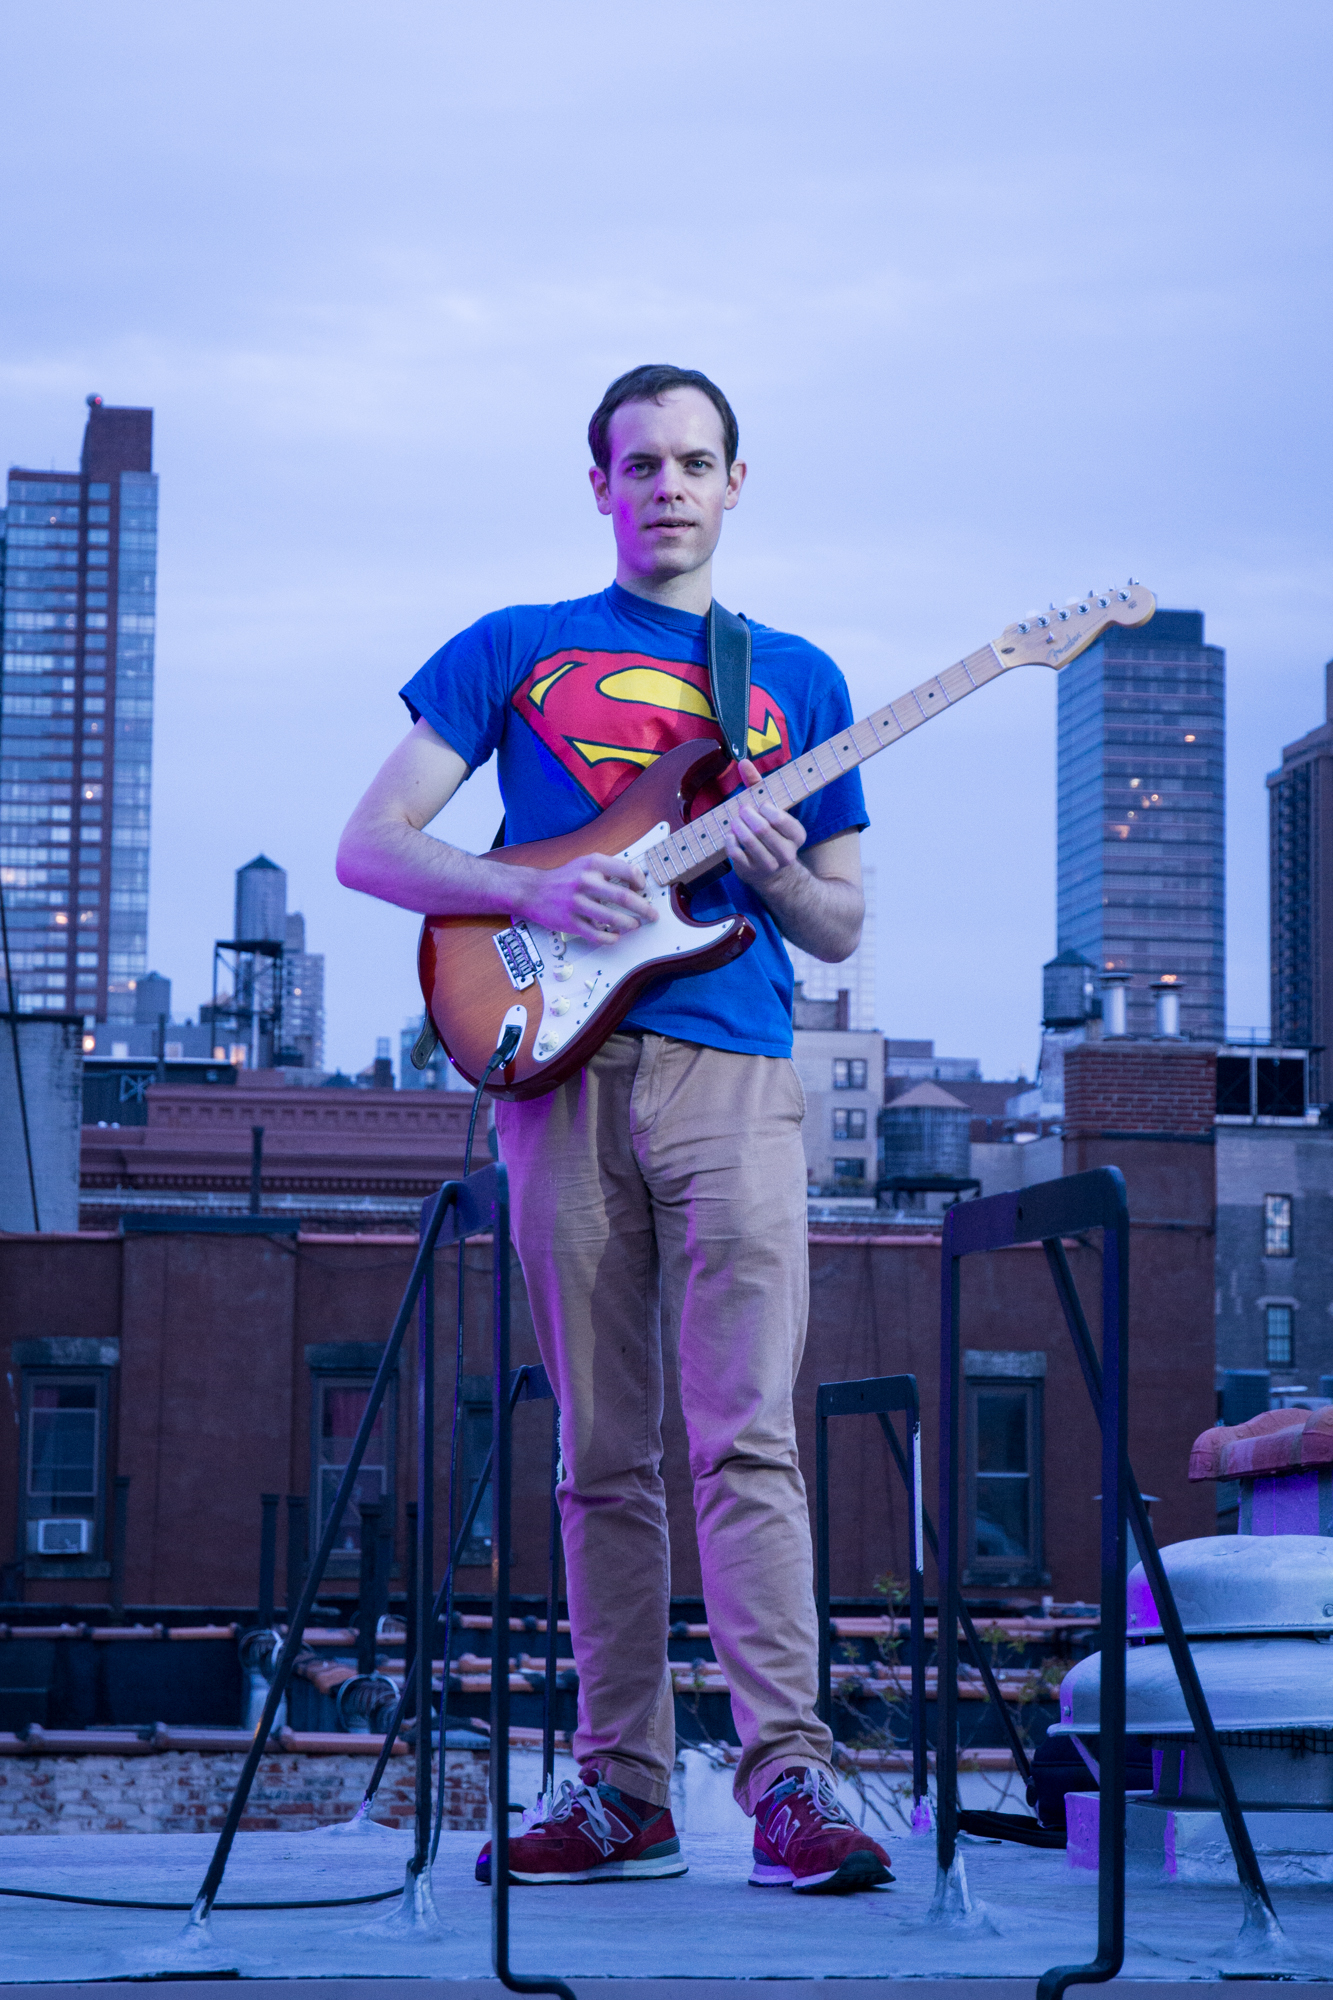 allen-childs-musician-portraits-roof-new-york-njohnston-photography-43.jpg